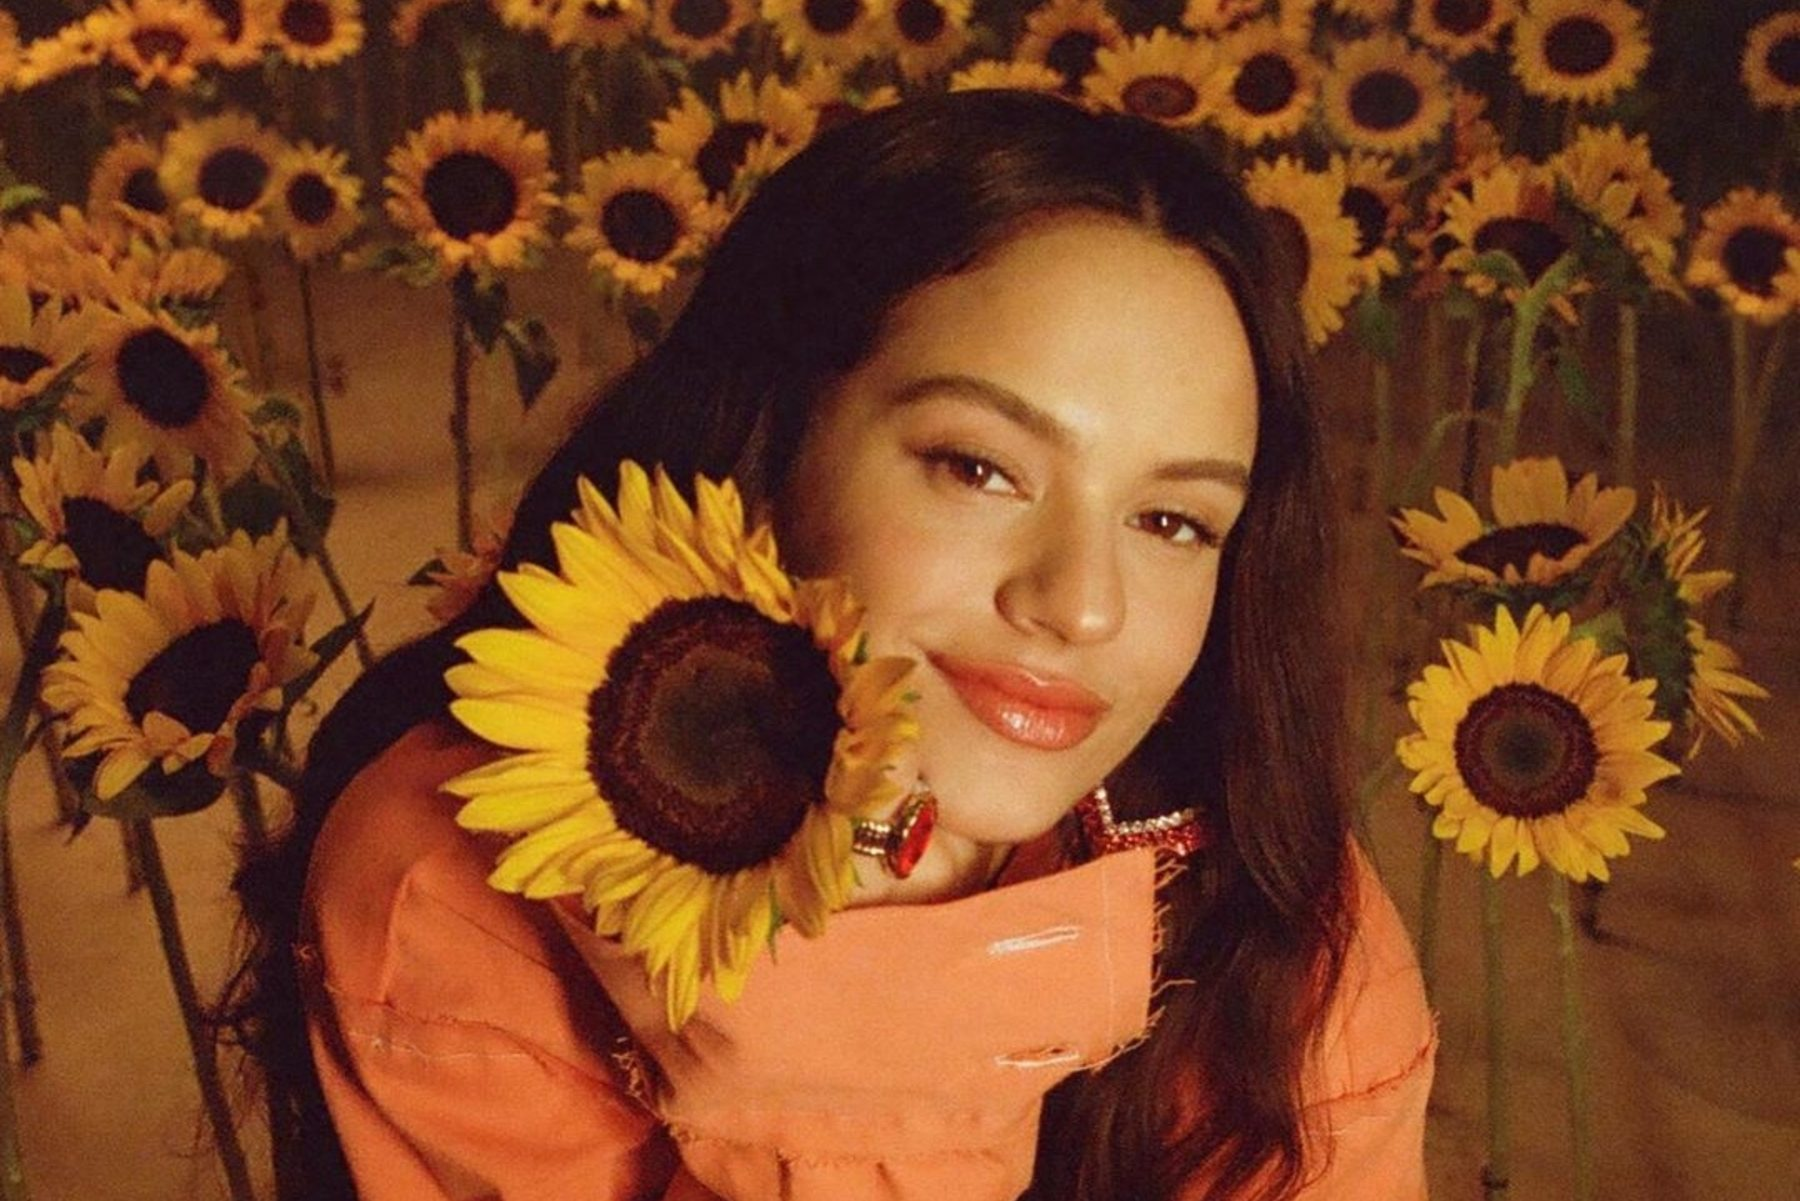 image of artist, Rosalía, among sunflowers